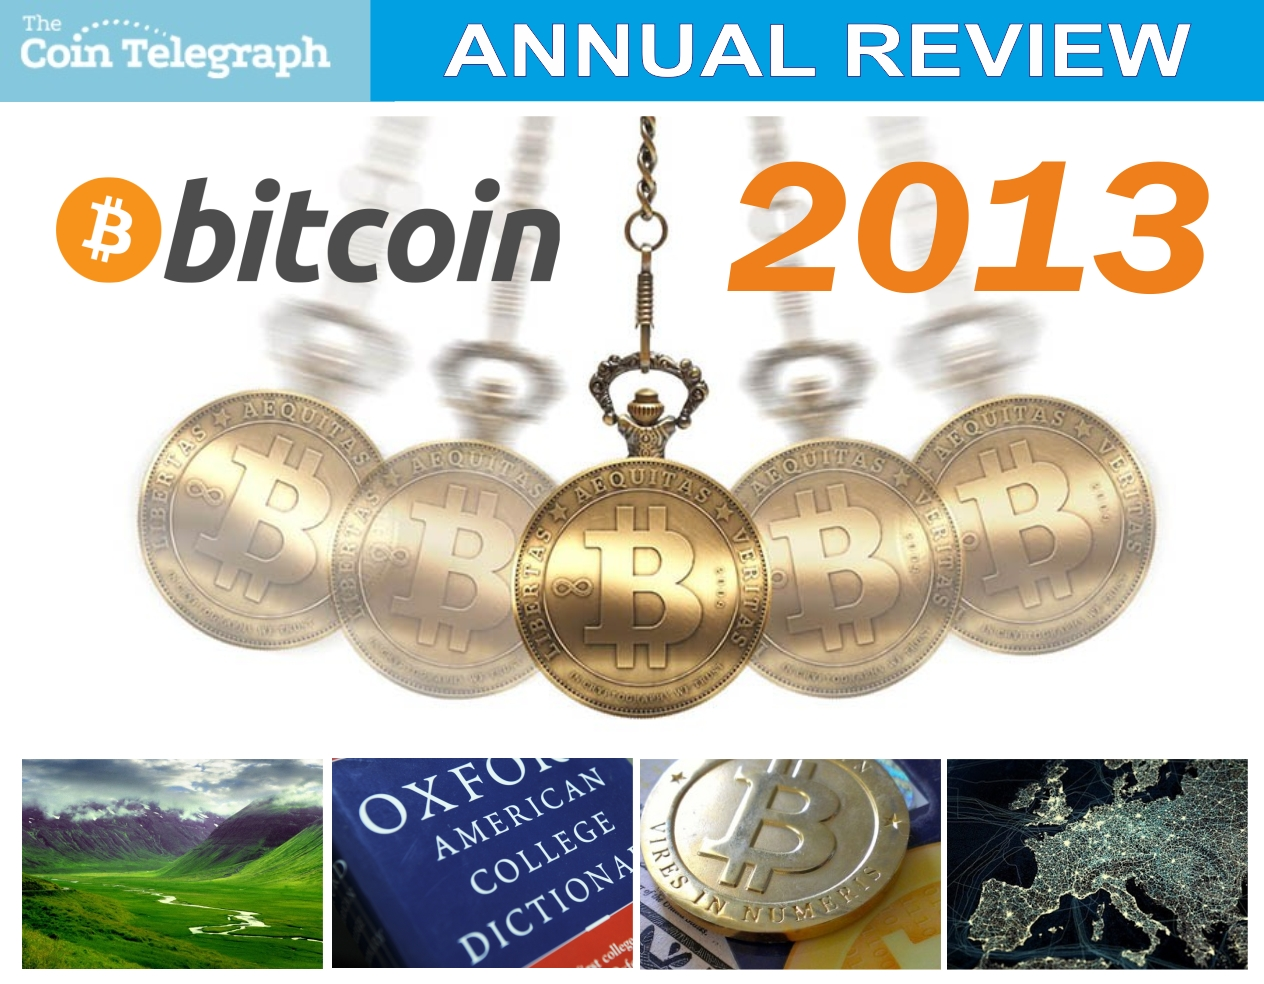 Cointelegraph Annual Review